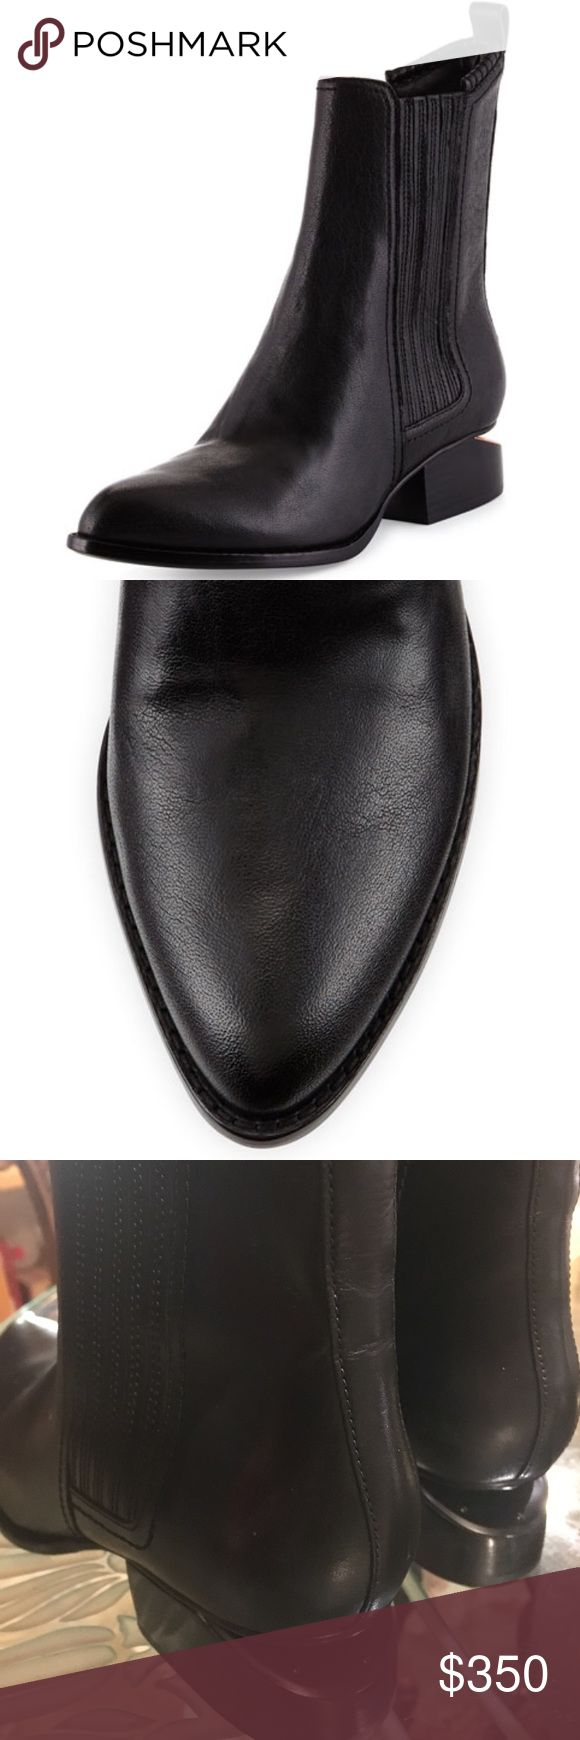 """Alexander Wang Chelsea """"100% GENUINE CALF LEATHER ANOUCK CLASSIC CHELSEA BOOT IN SMOOTH BLACK LEATHER WITH SIDE ELASTIC GORES AND TOP STITCH DETAIL. SIGNATURE CUT OUT HEEL WITH RHODIUM METAL BLACK PLATE. WRAPPED LEATHER STACKED HEEL AND BUFF LEATHER OUTSOLE. THIS ITEM RUNS SMALL. WE RECOMMEND A HALF SIZE UP."""" -Alexander Wang official website   HEEL HEIGHT: 1.6"""" (40MM) no box included Alexander Wang Shoes Ankle Boots & Booties"""